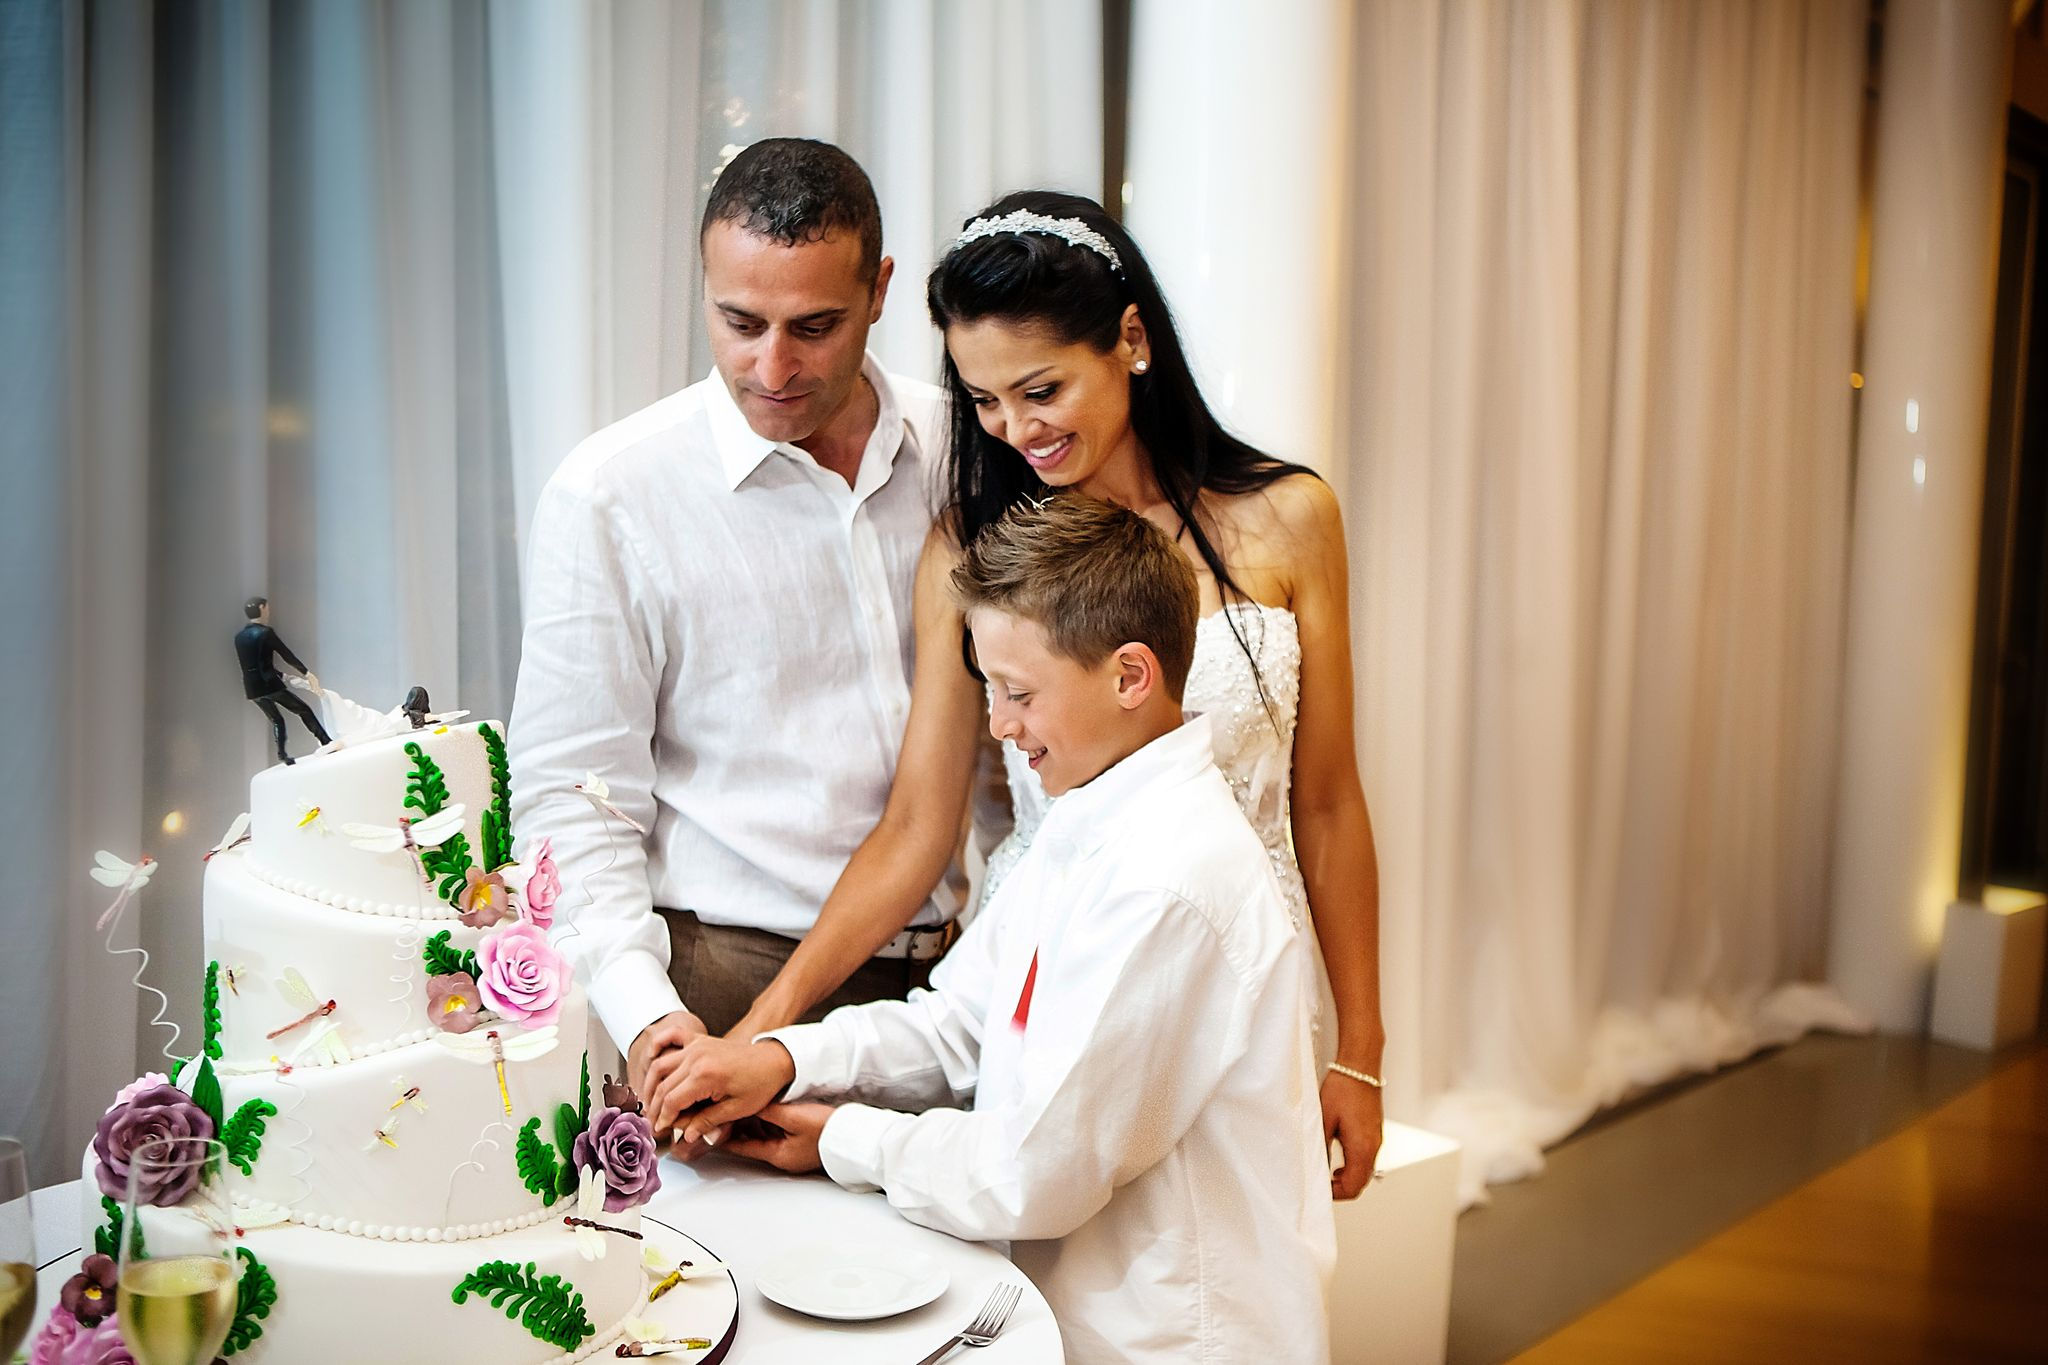 cake cutting with son